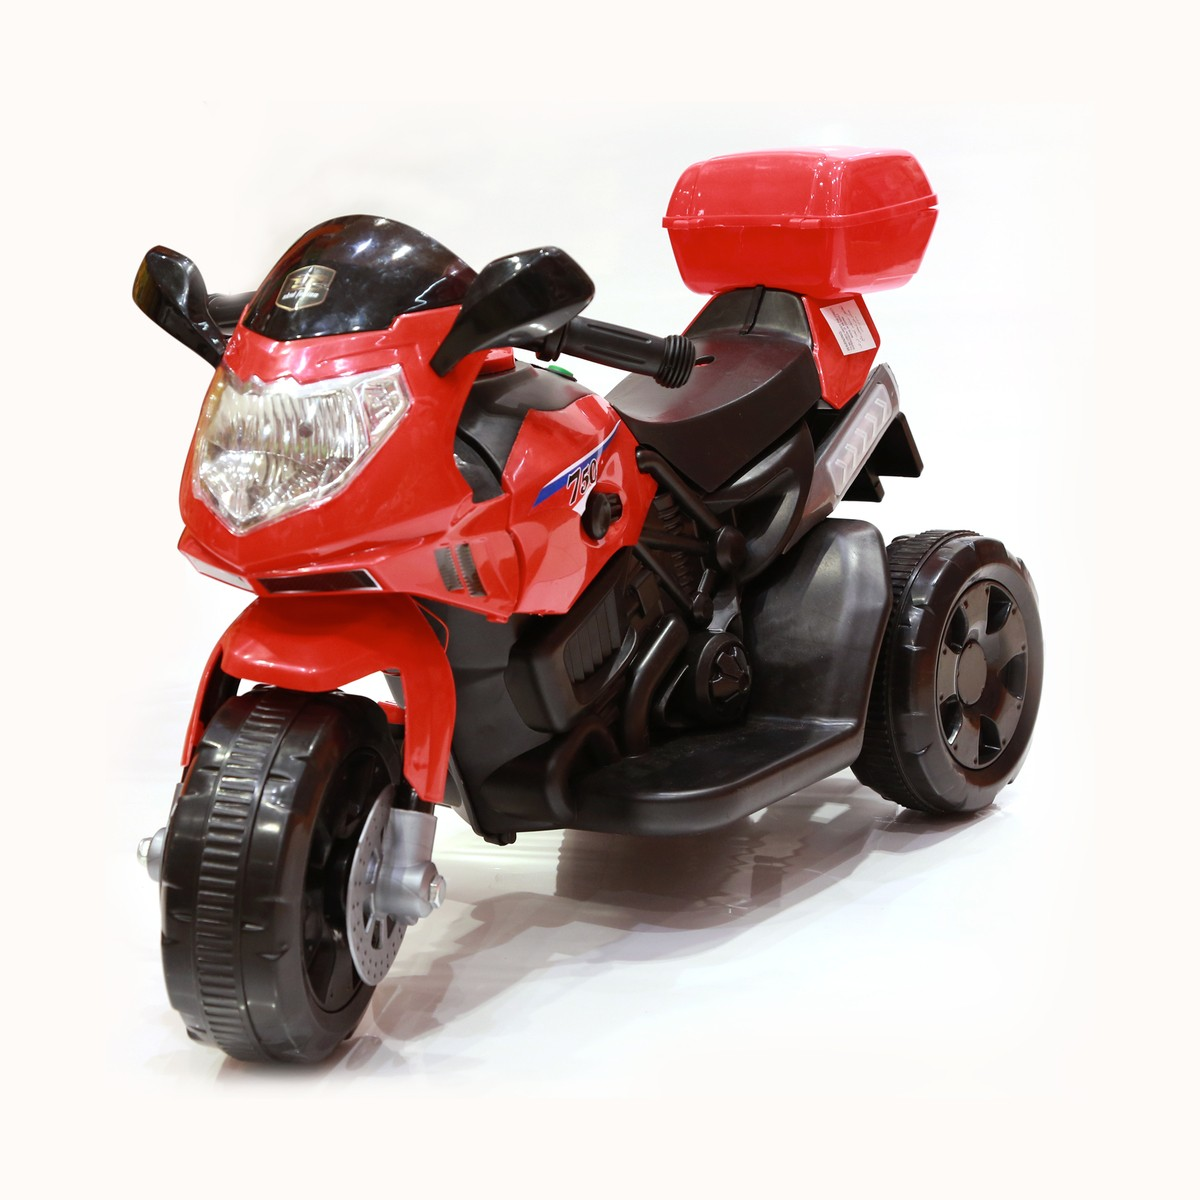 Skid Fusion Kids-Motor Bike Rechargeable